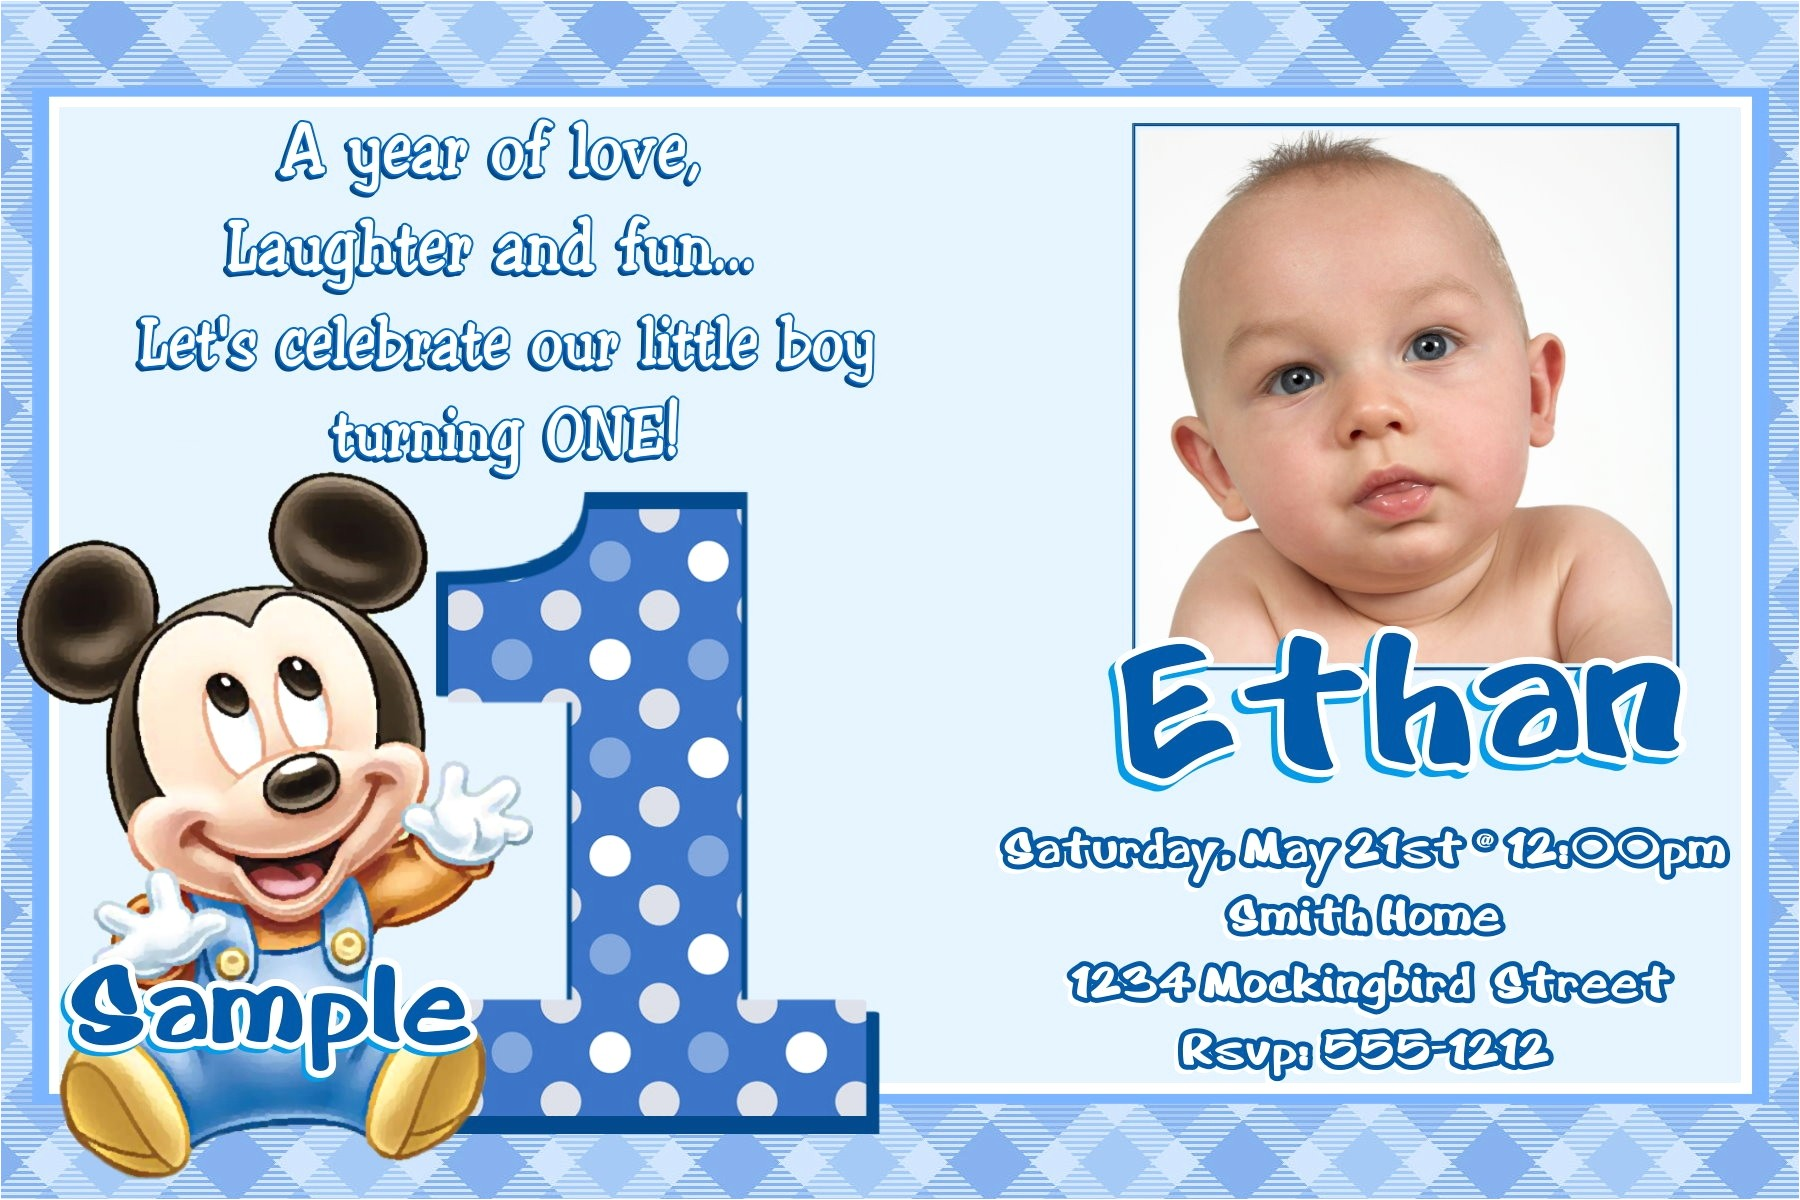 sample of birthday invitation cards 1 year old beautiful birthday invitation cards birthday invitation cards format new